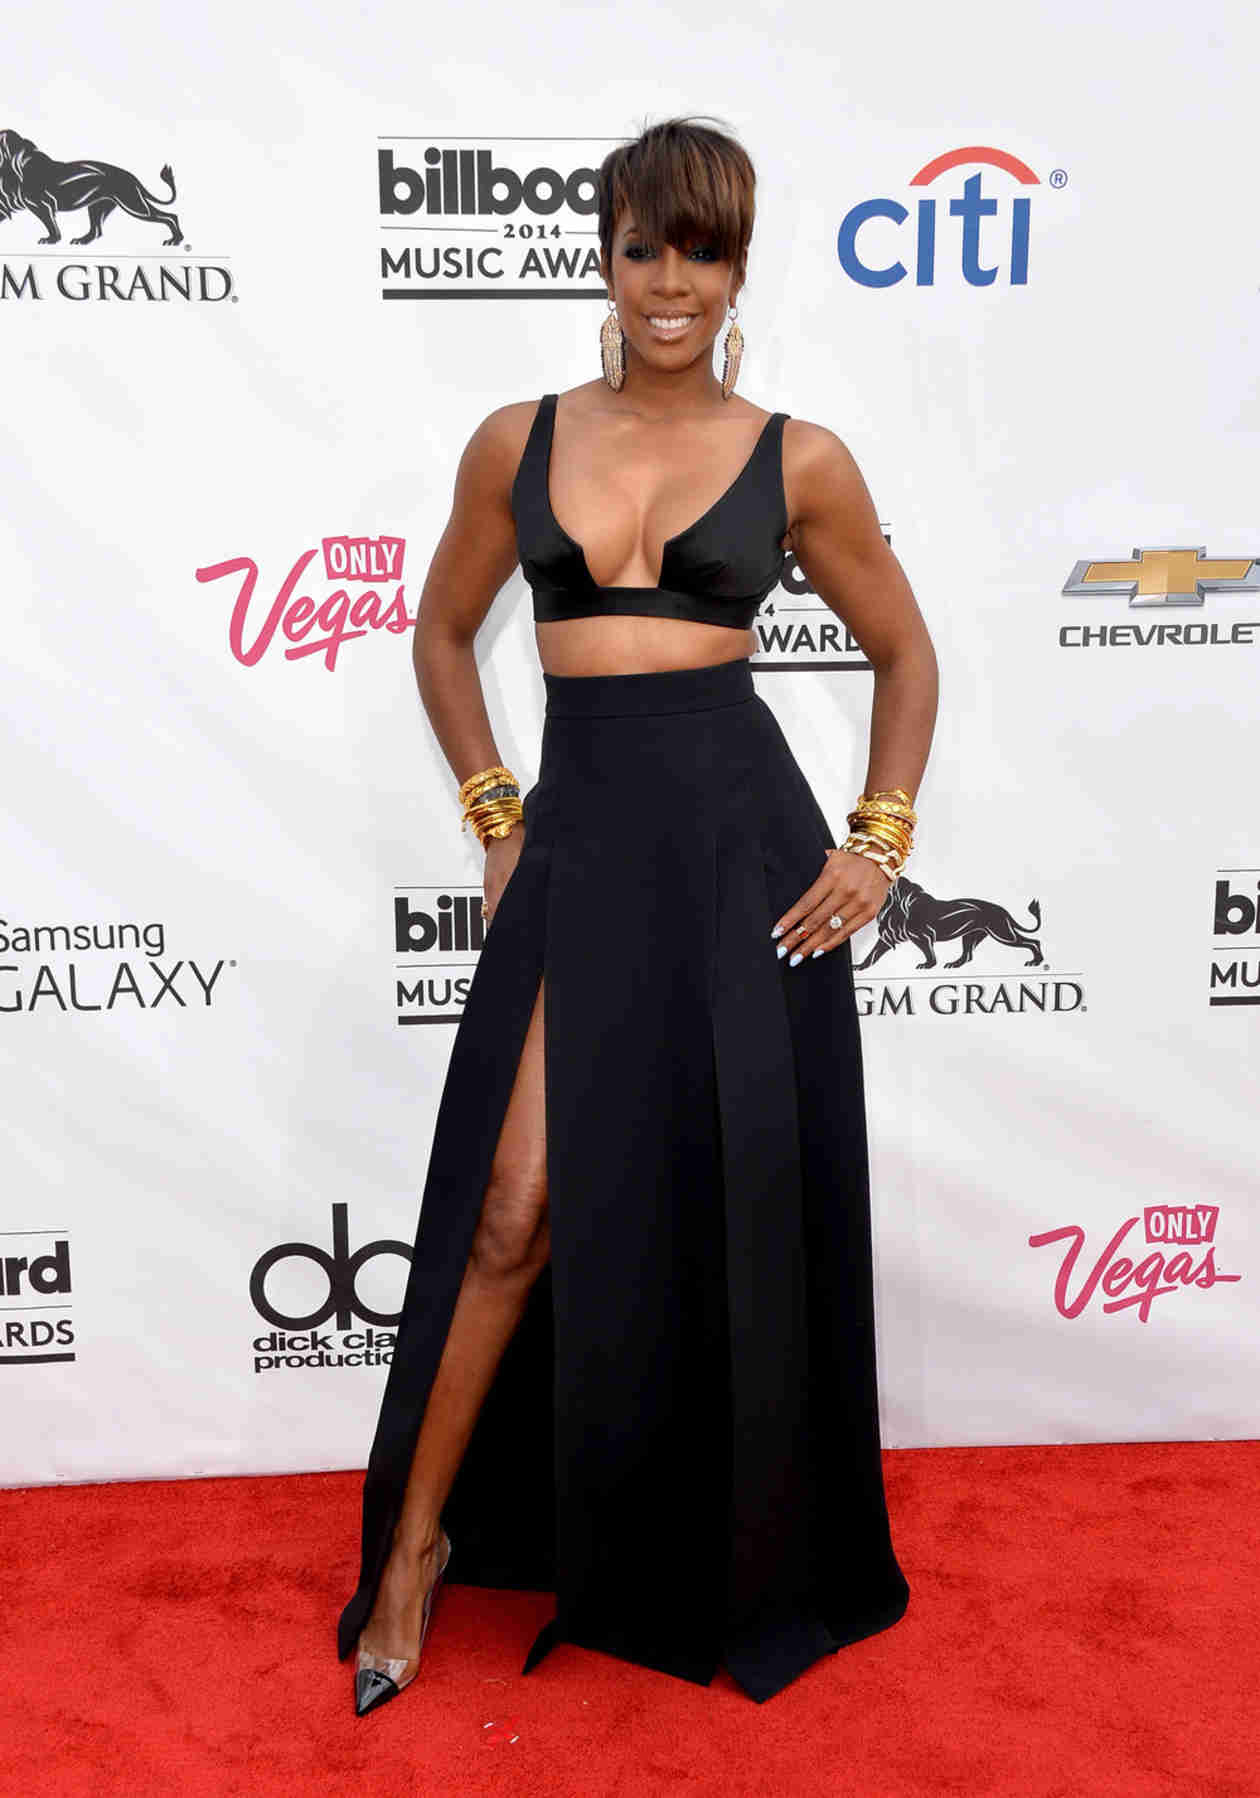 Pregnant Kelly Rowland Dishes on Her Mother-to-Be Fashion and Cravings